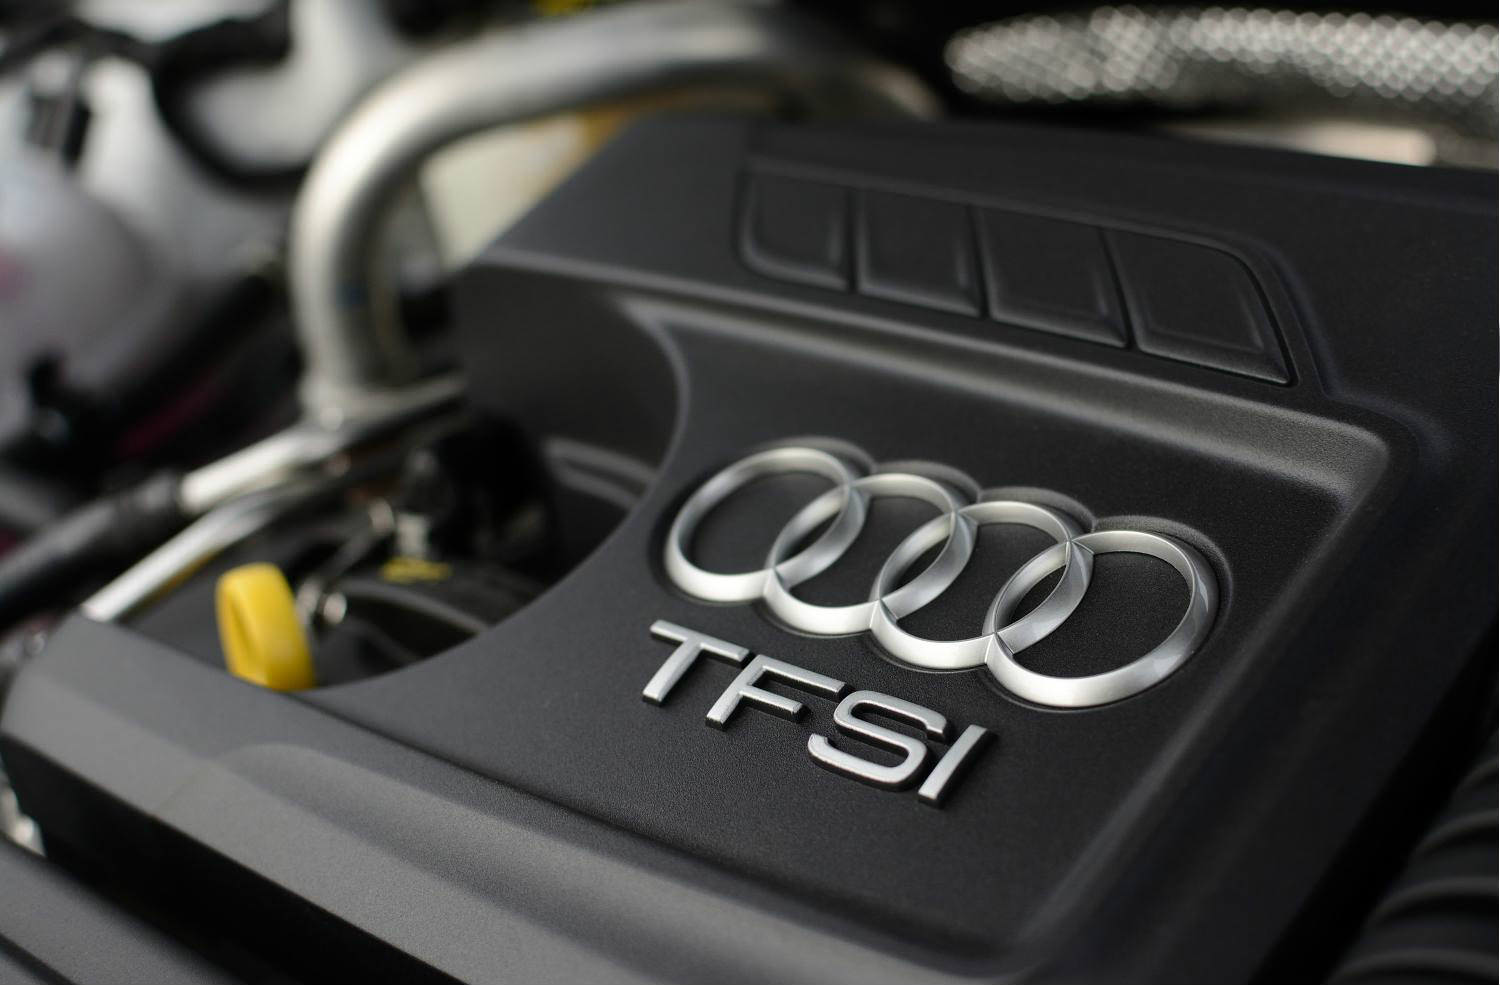 image of an audi tfsi engine